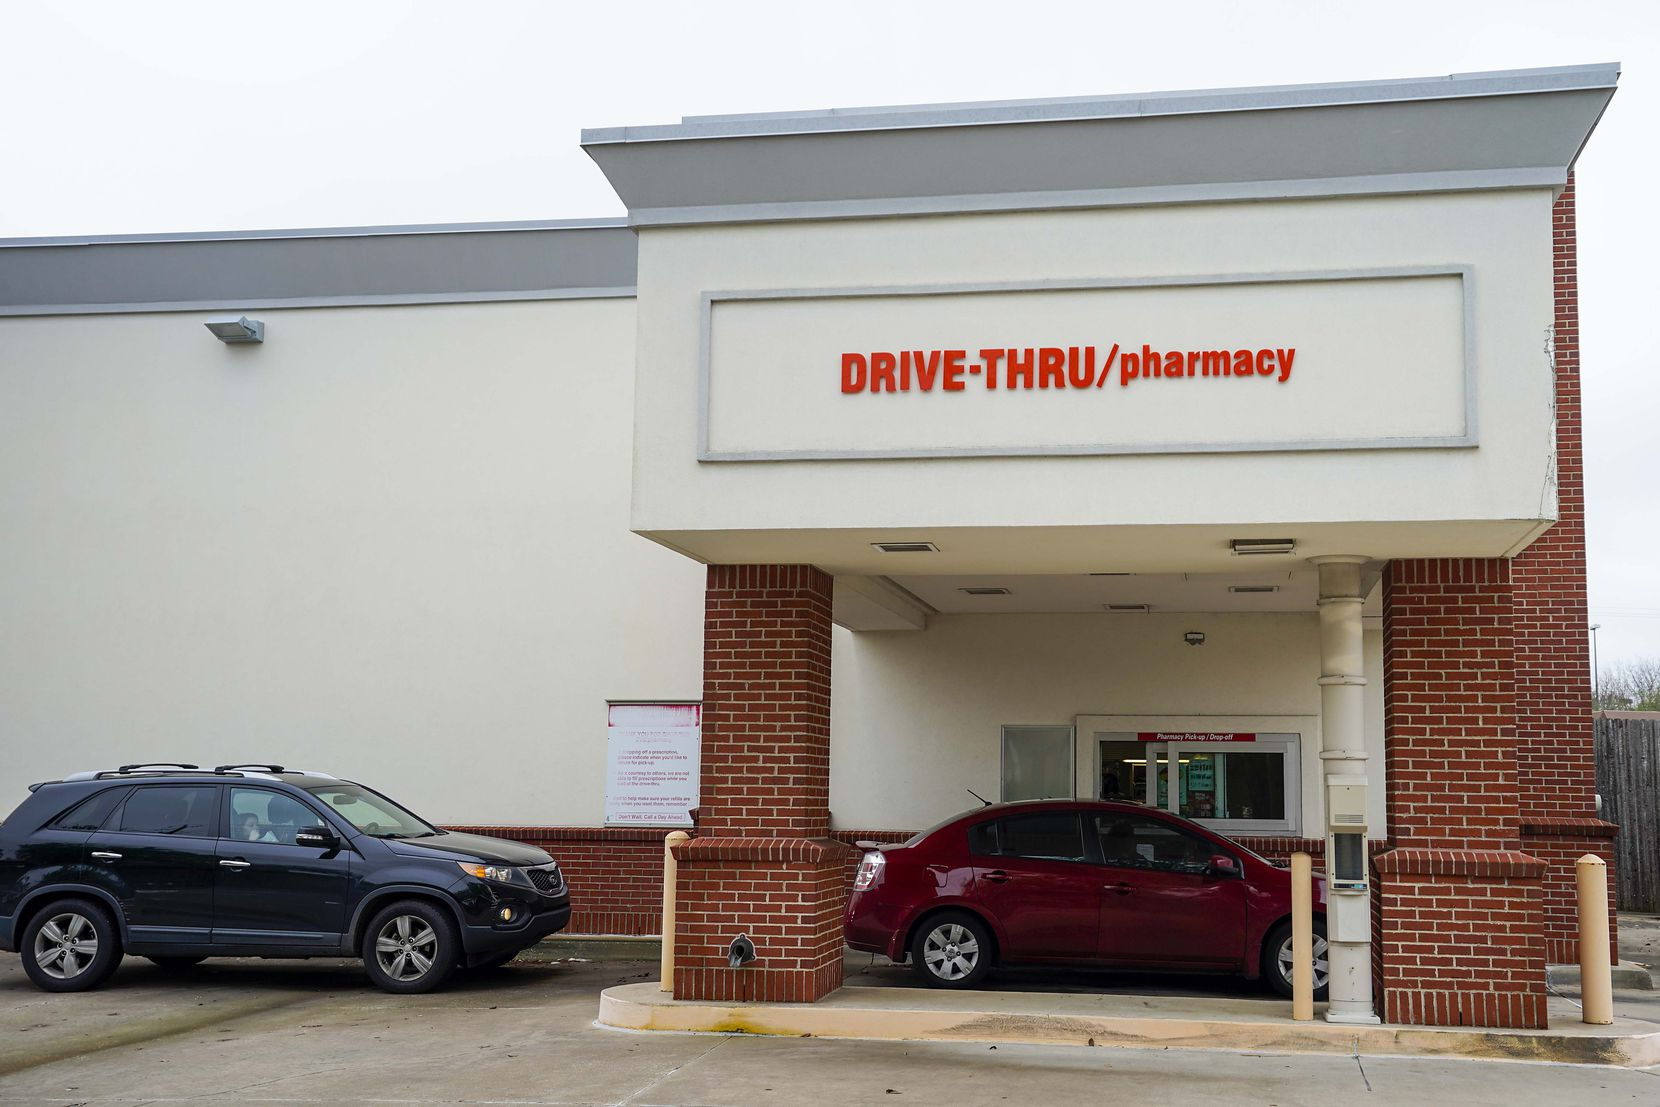 Cars line up for drive-thru service at a CVS pharmacy on Belt Line Road in Dallas on March 16. CVS is among numerous places in the Dallas area offering coronavirus testing, provided certain criteria are met.